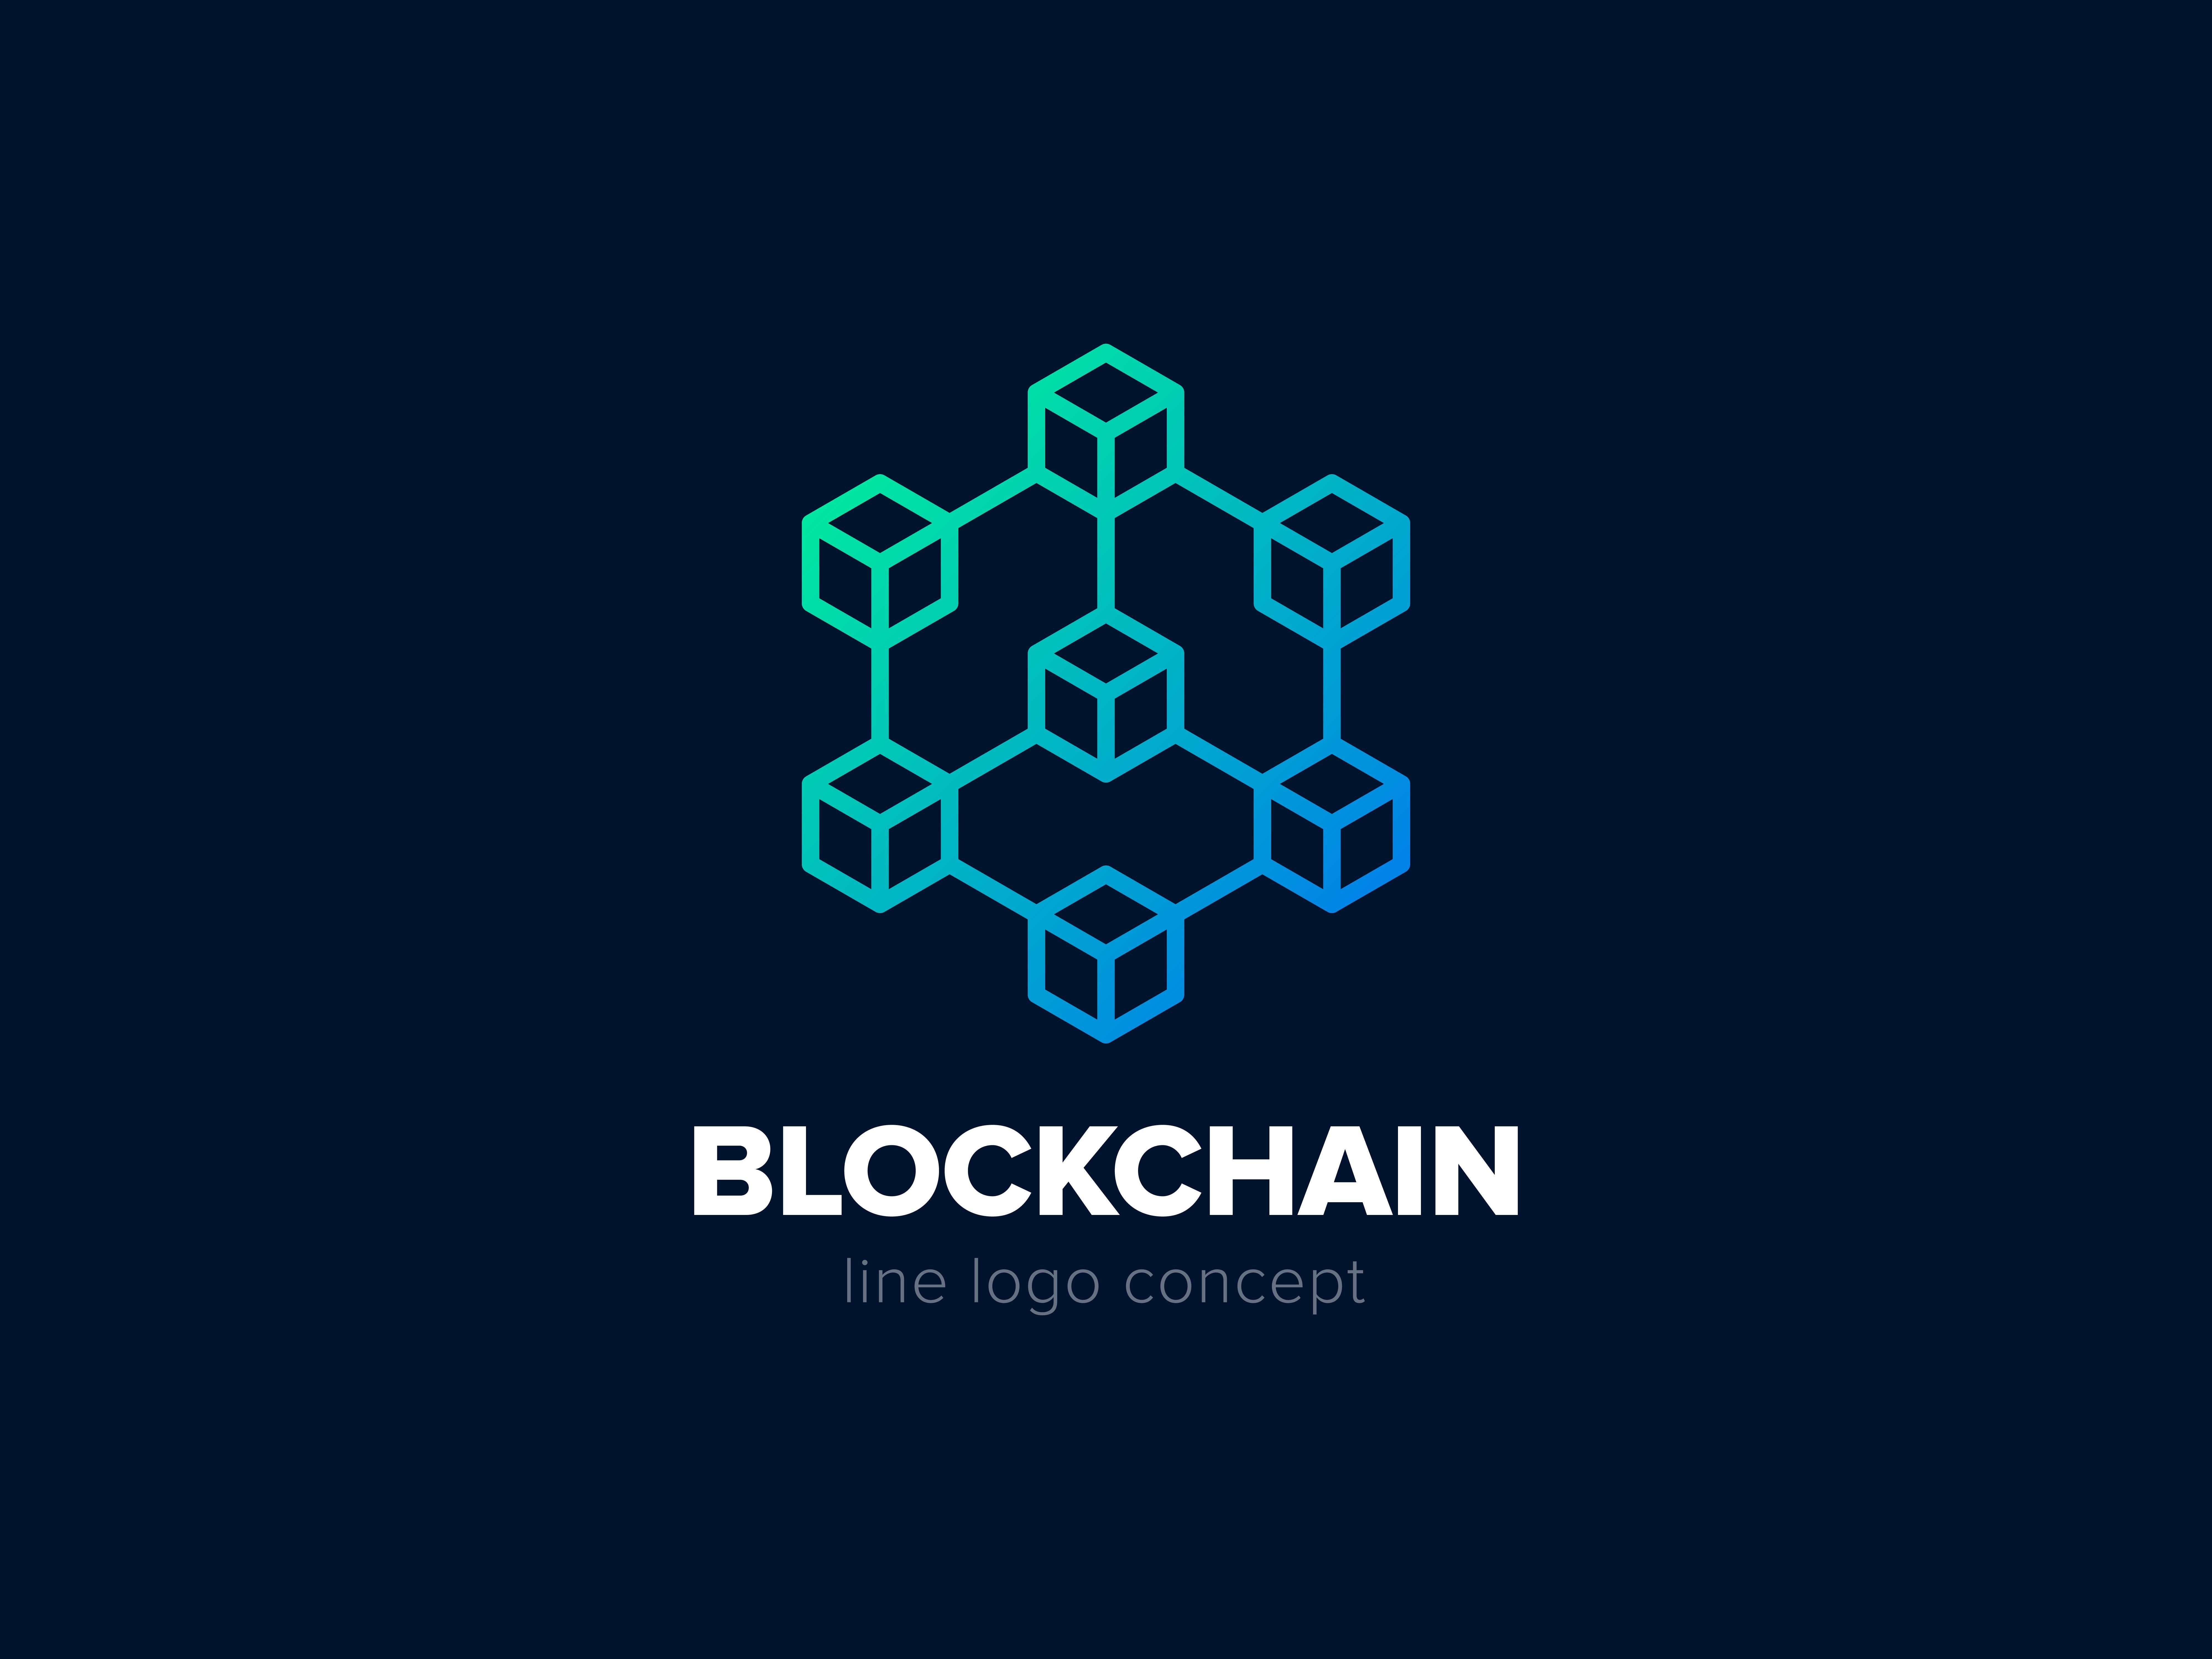 Blockchain Training in Ahmedabad India for Beginners-Bitcoin training(June 19-July 5)-introduction to cryptocurrency-ico-ethereum-hyperledger(Weekday course)